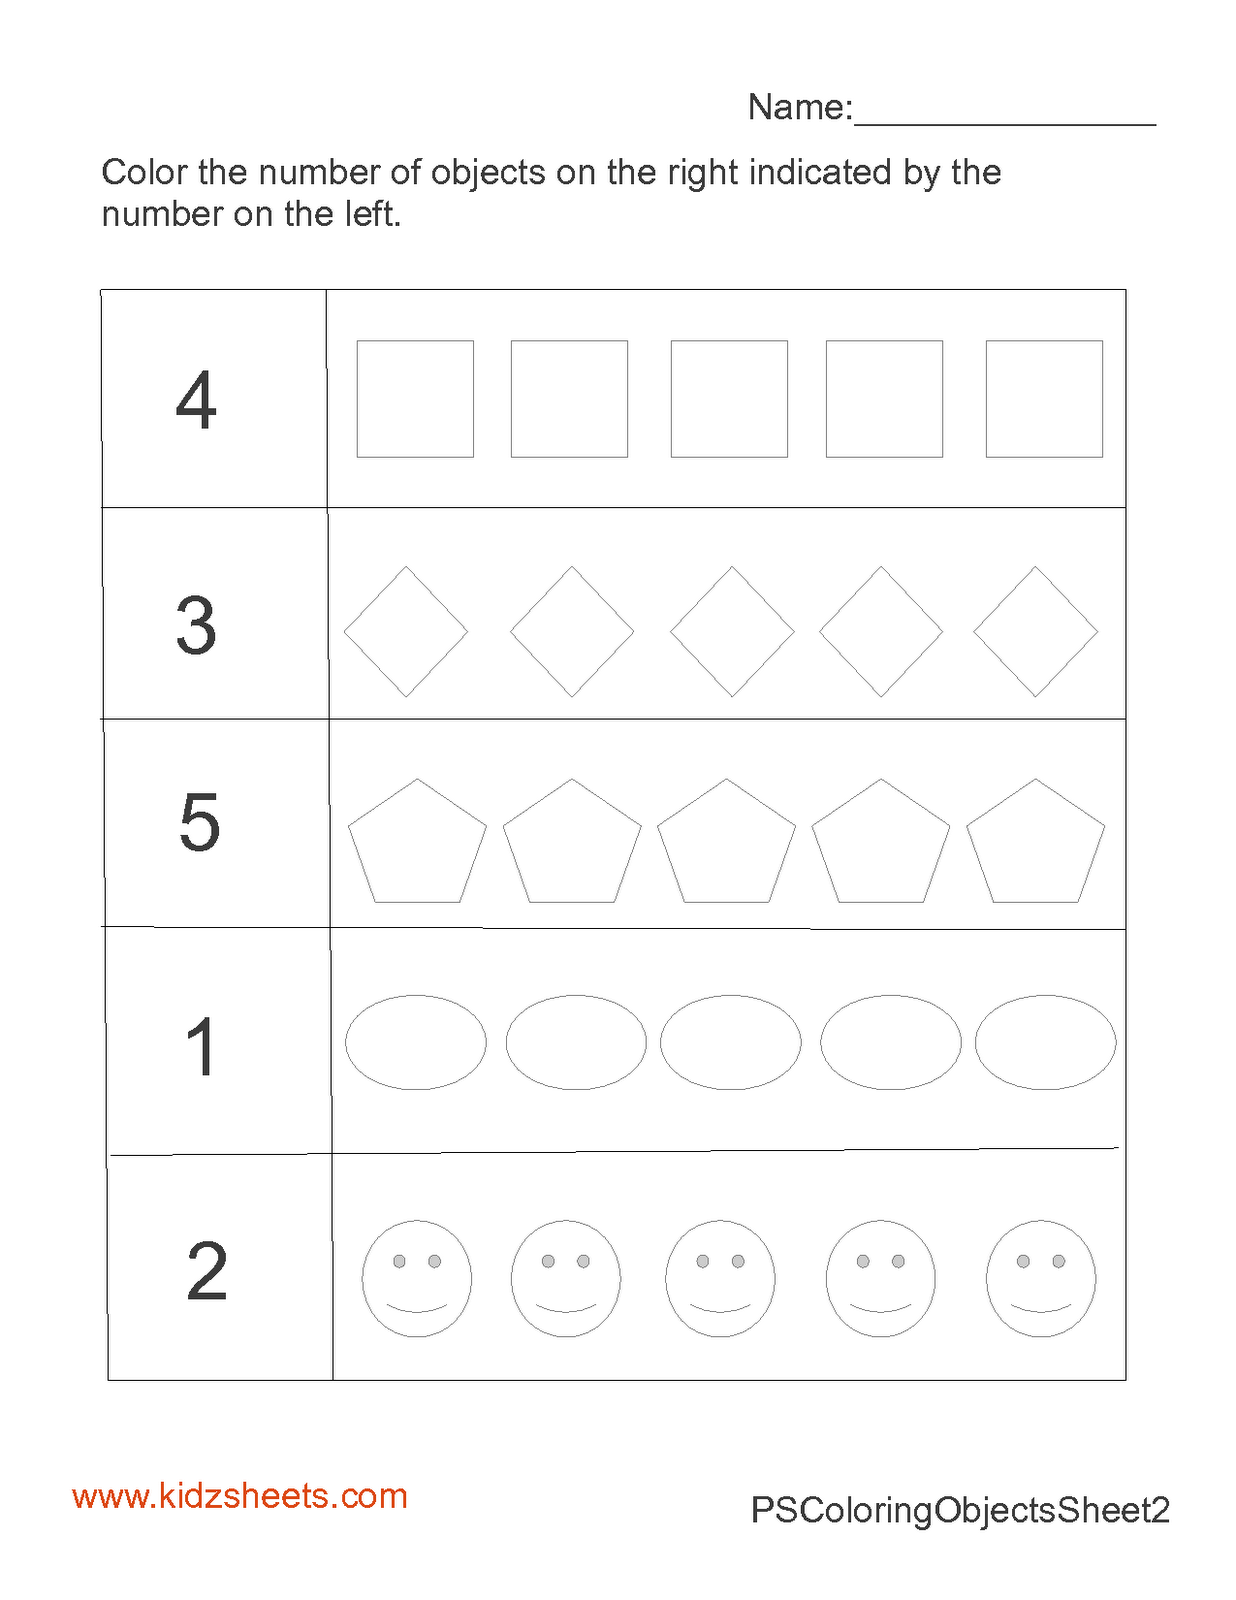 35 Counting And Coloring Worksheets